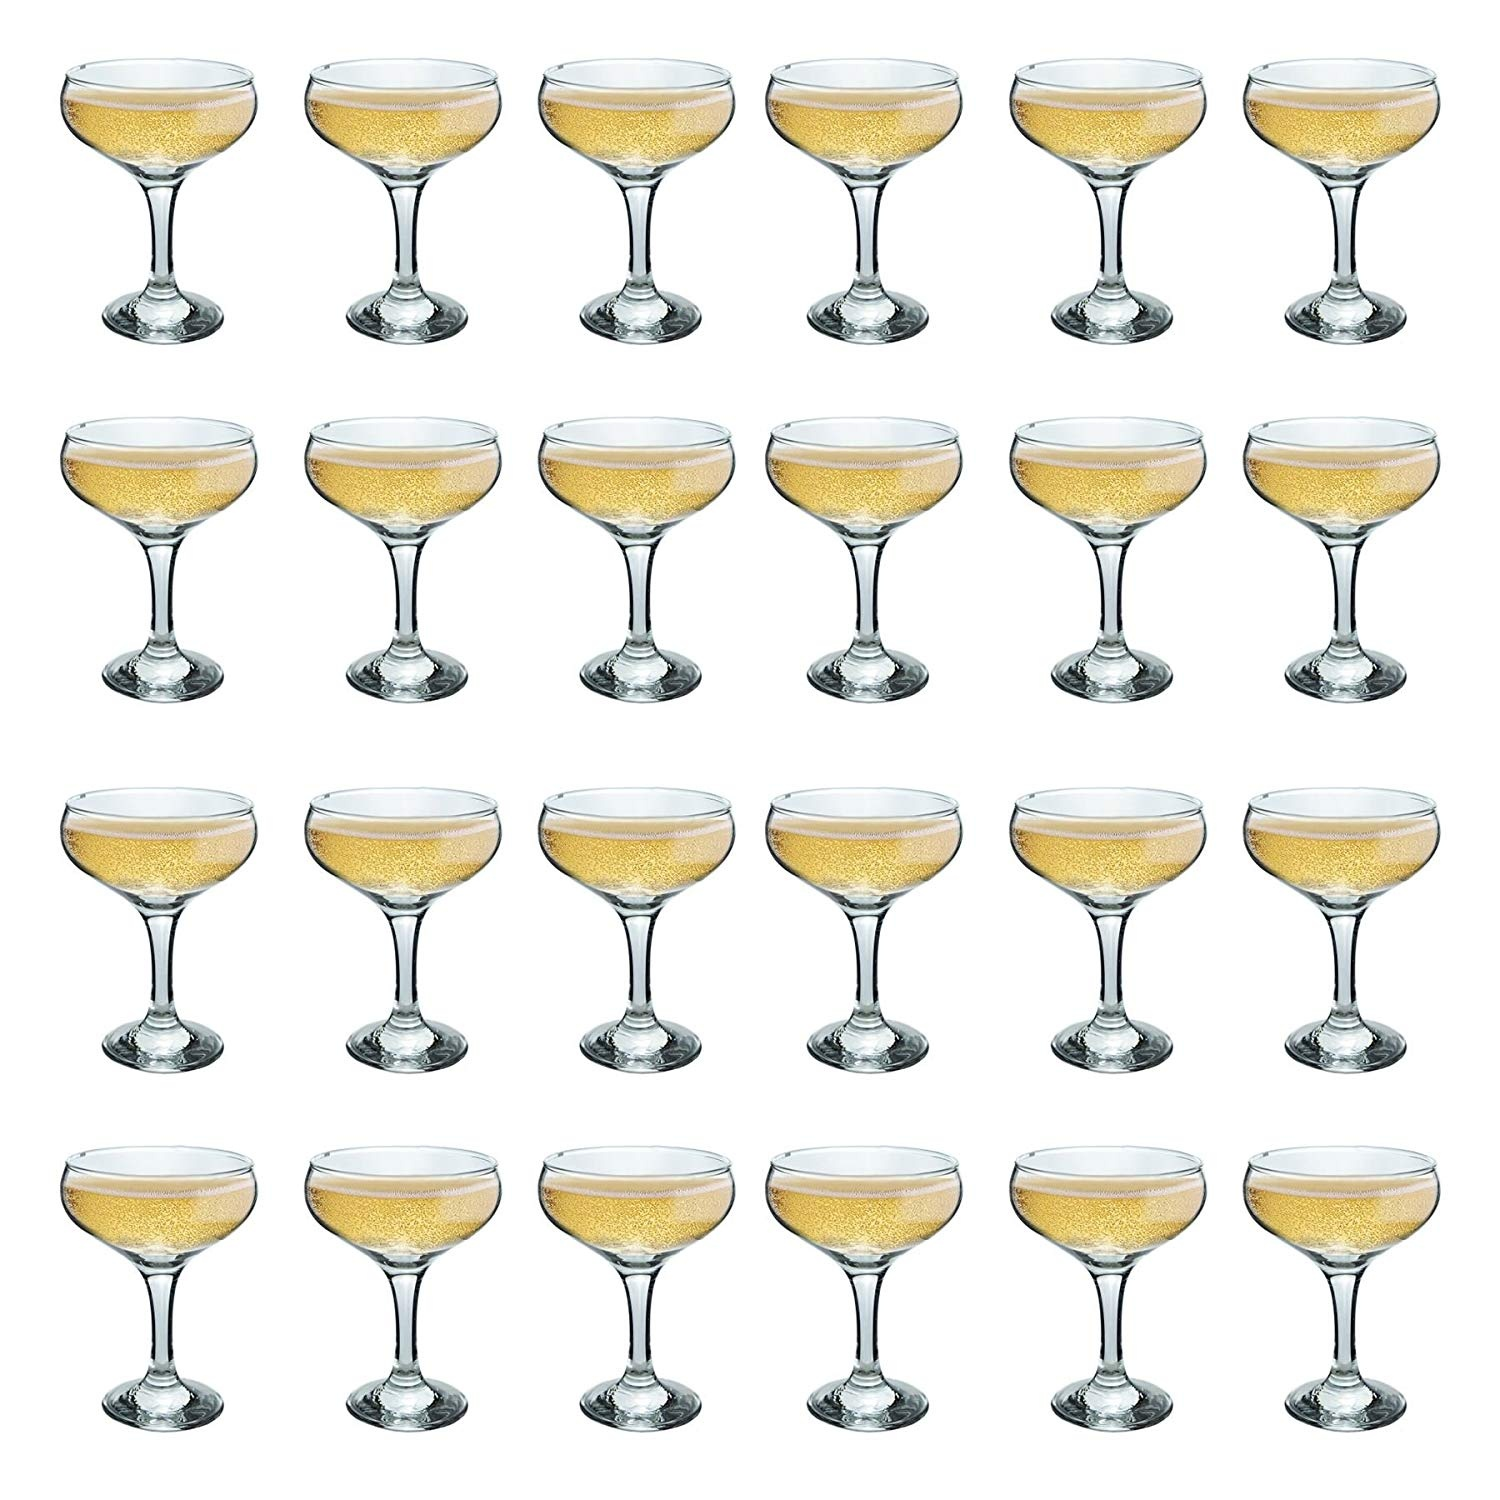 eb2209c04db8 Rink Drink Champagne Glasses Vintage Coupe Glass Saucer – 200ml ...